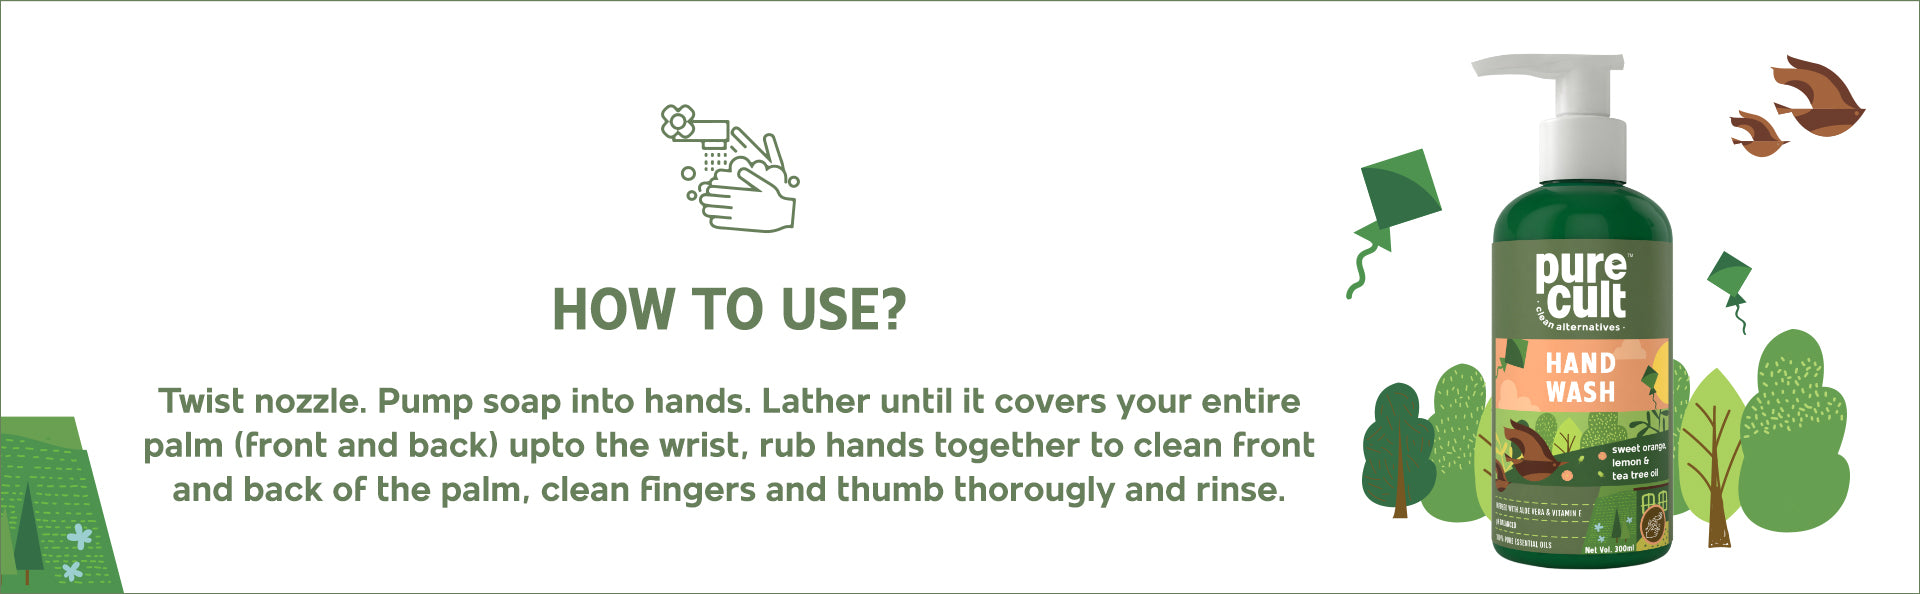 How to use Pure Cult Hand wash